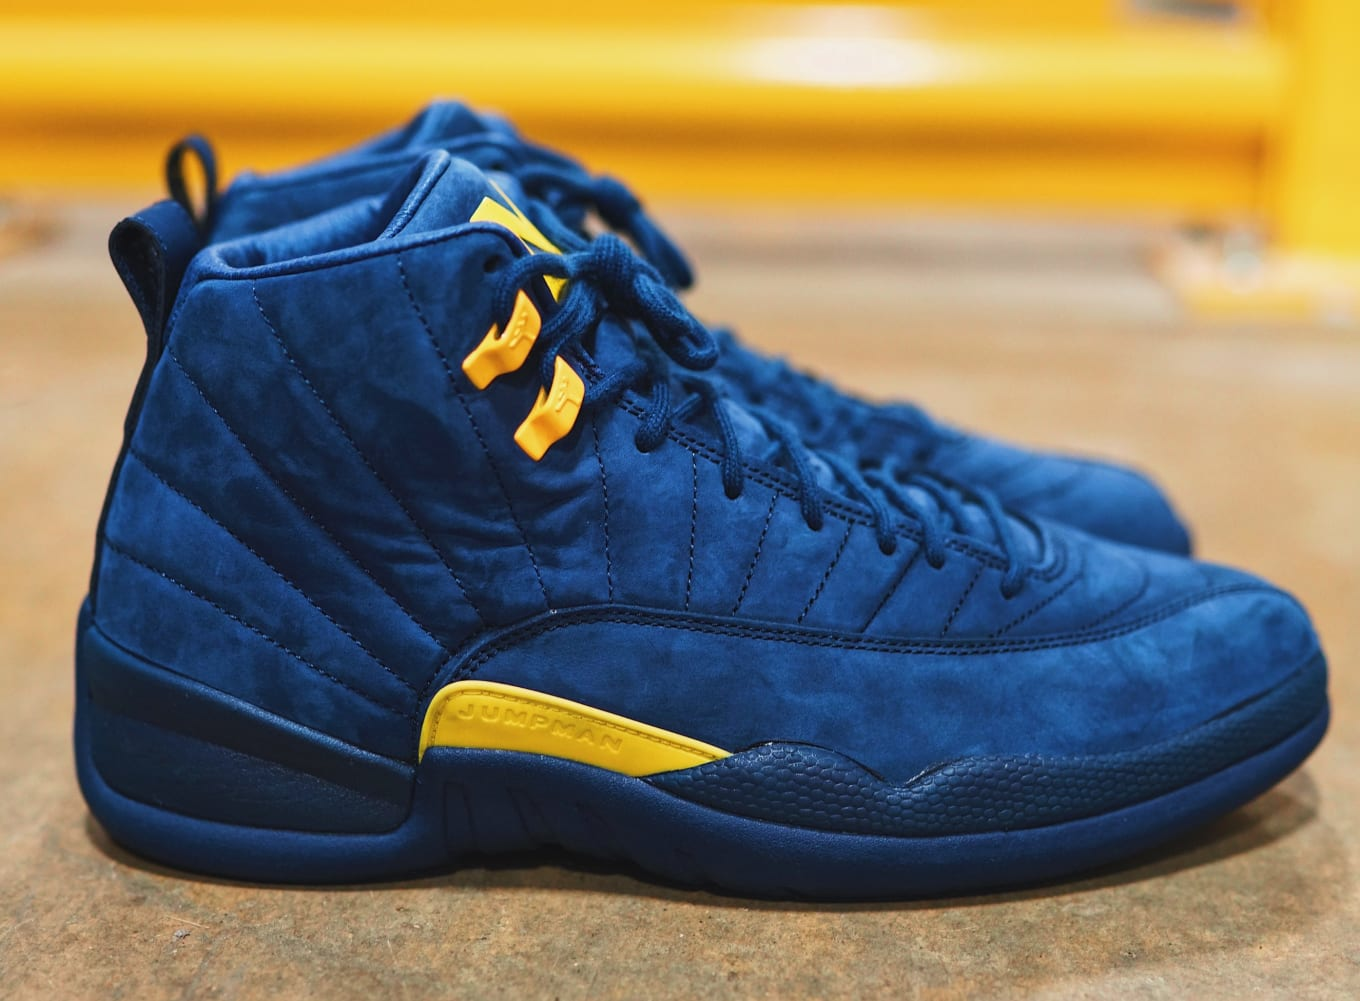 9c4209fd5ed Michigan  Air Jordan 12 College Navy Amarillo BQ3180-407 Release ...